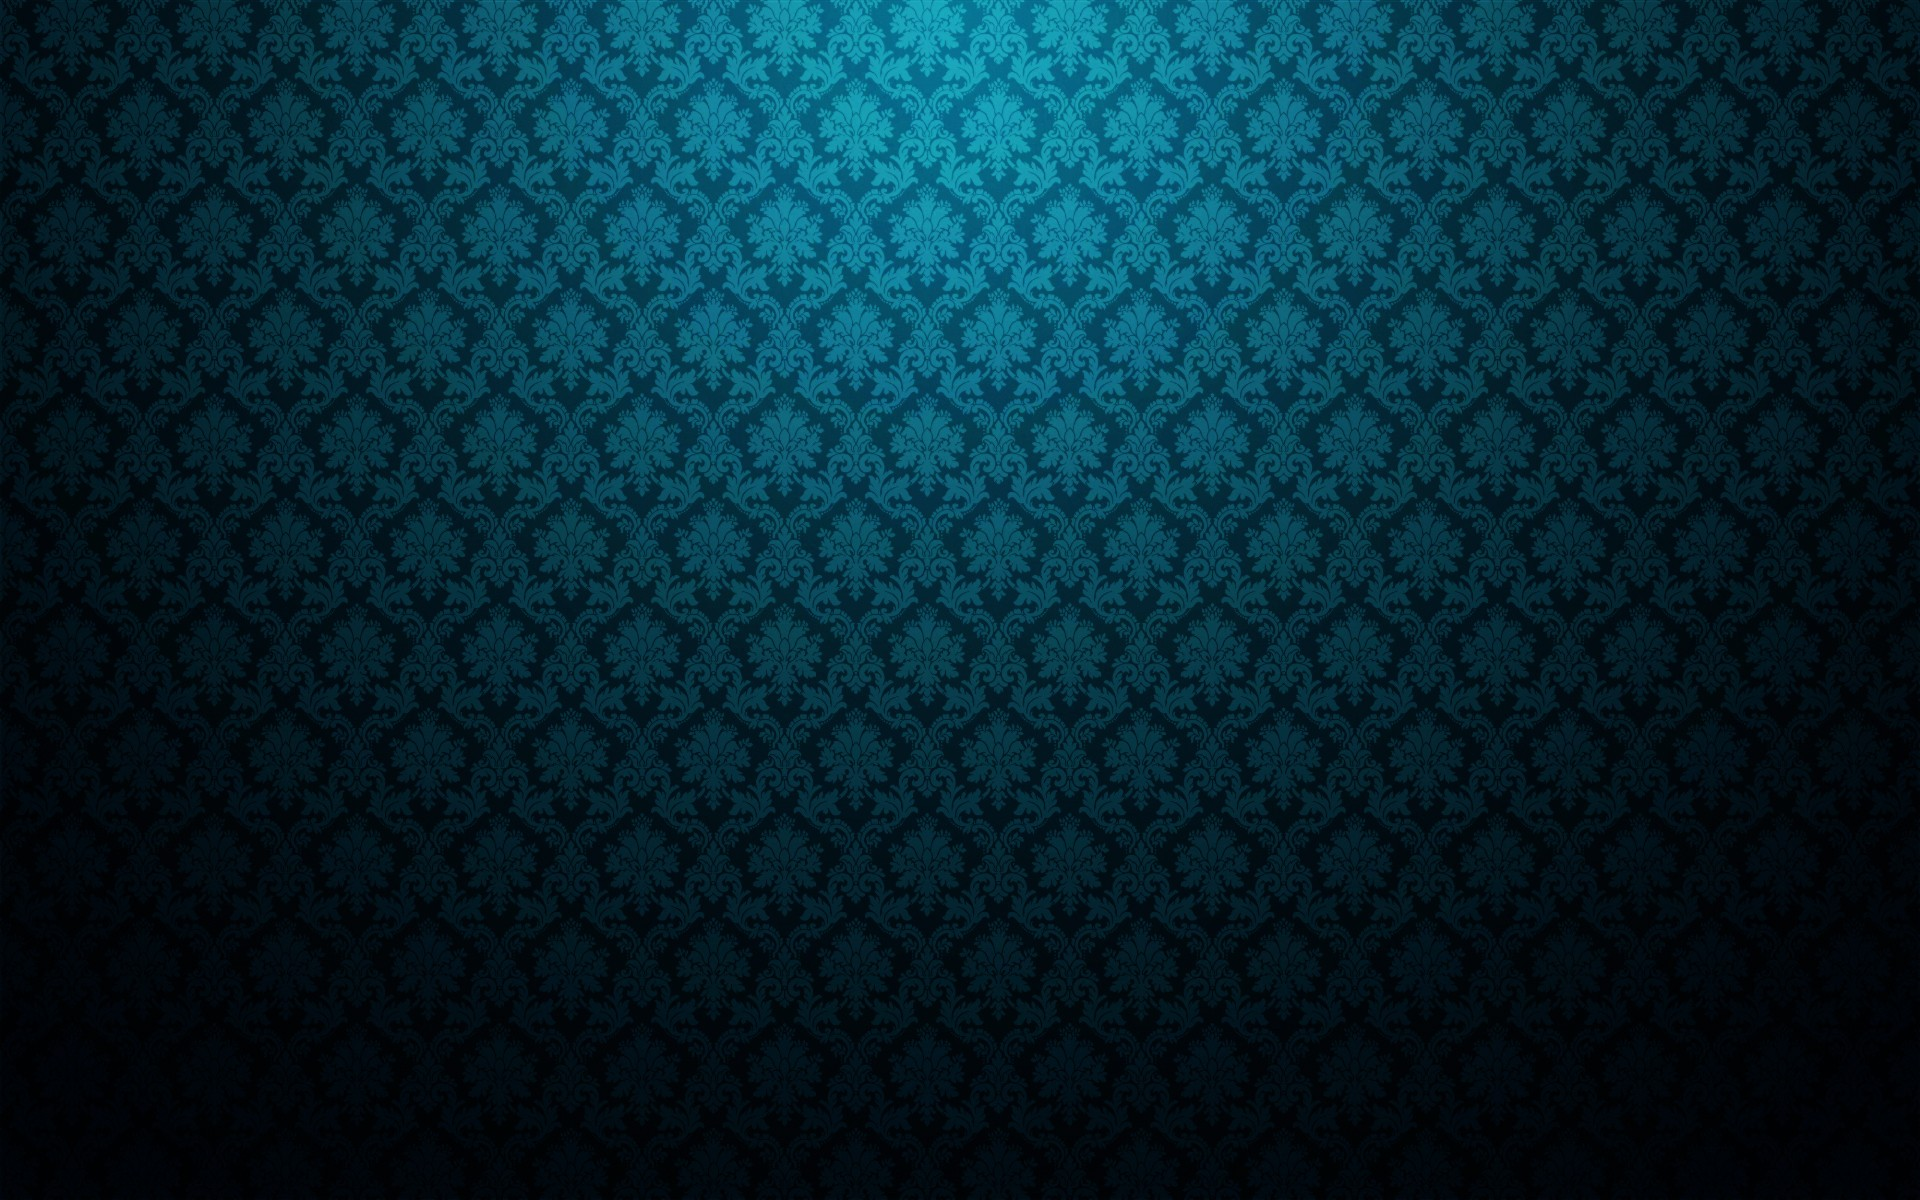 Abstract minimalistic pattern patterns damask 1920x1200